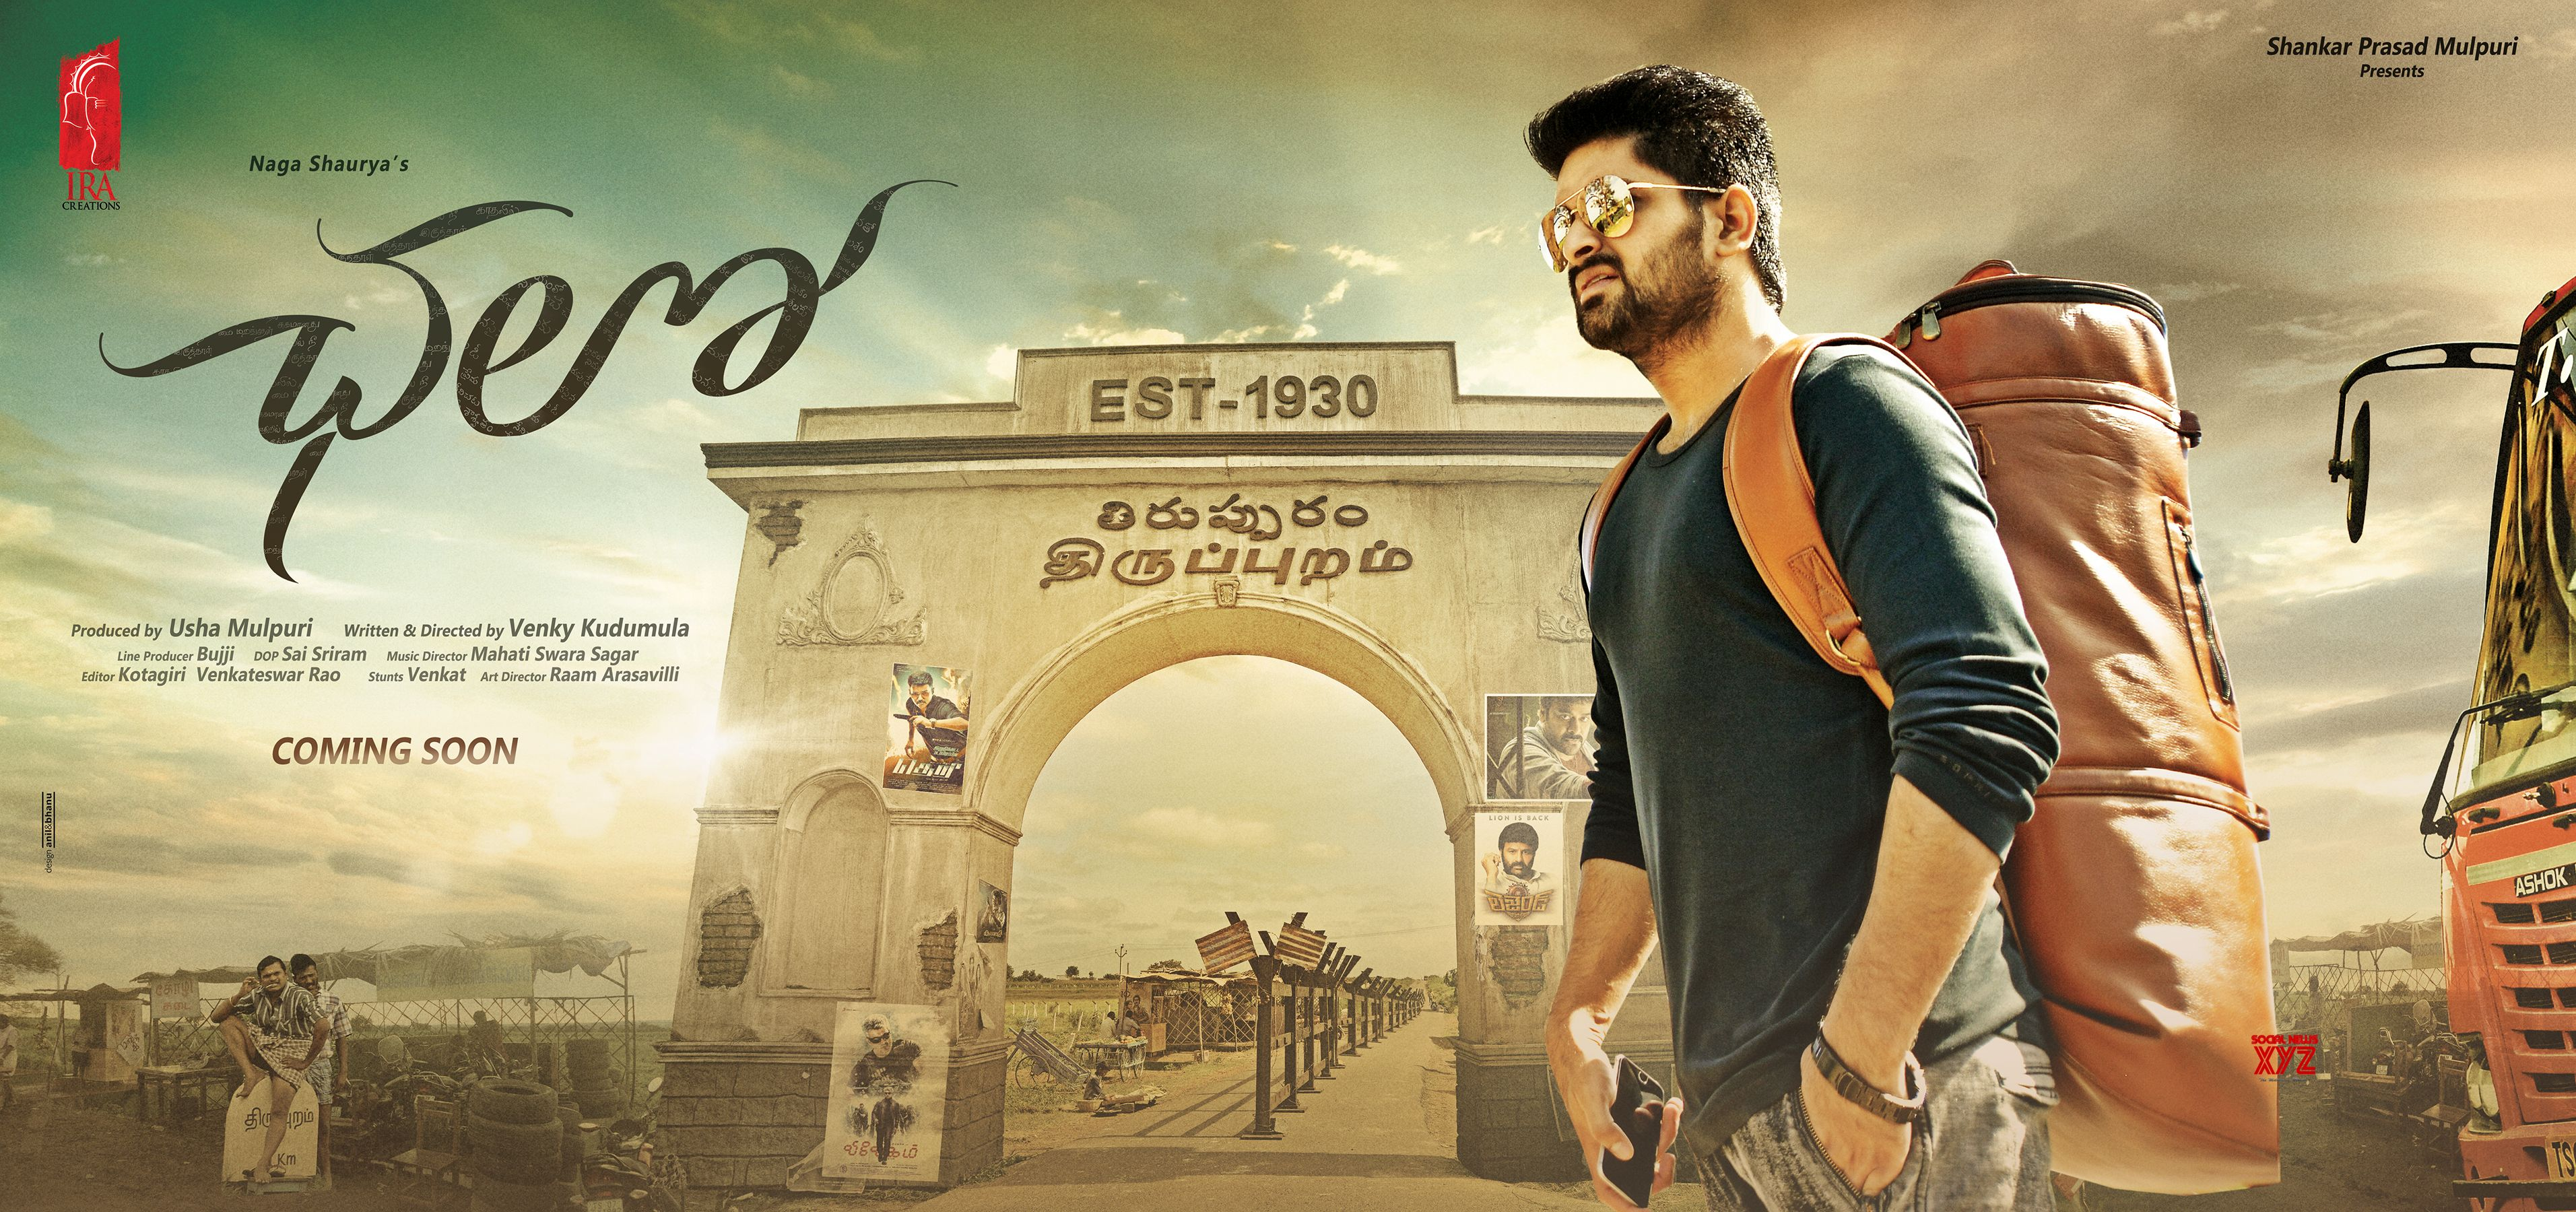 chalo movie posters